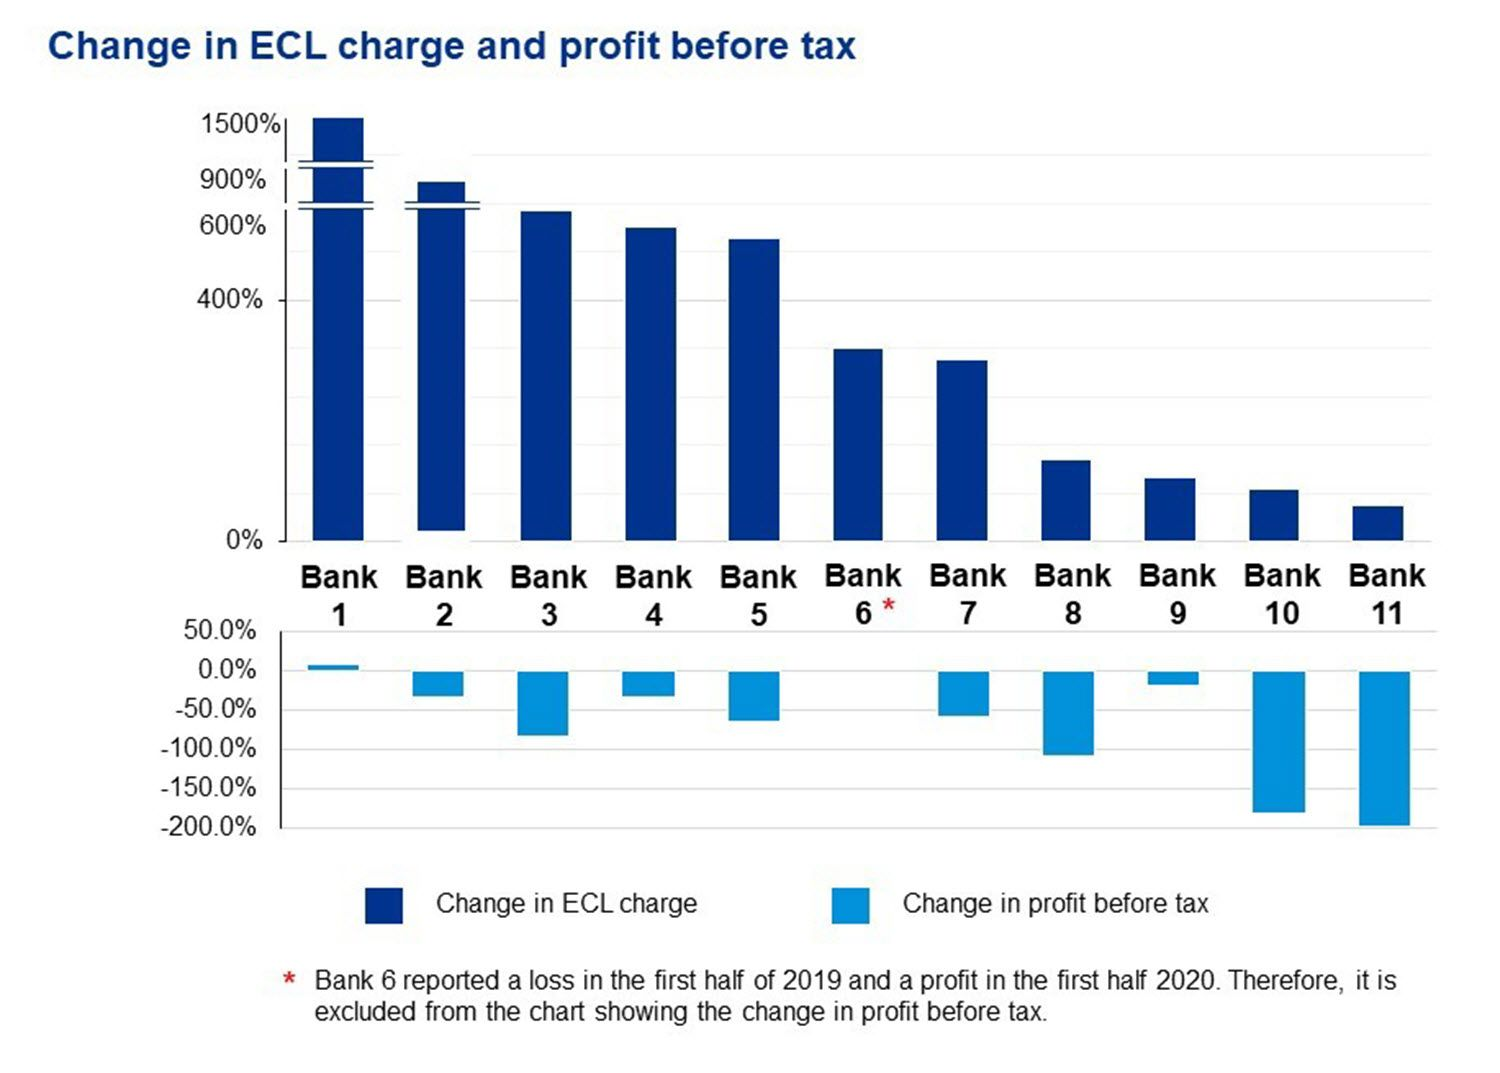 Changes in ECL charge and profit before tax